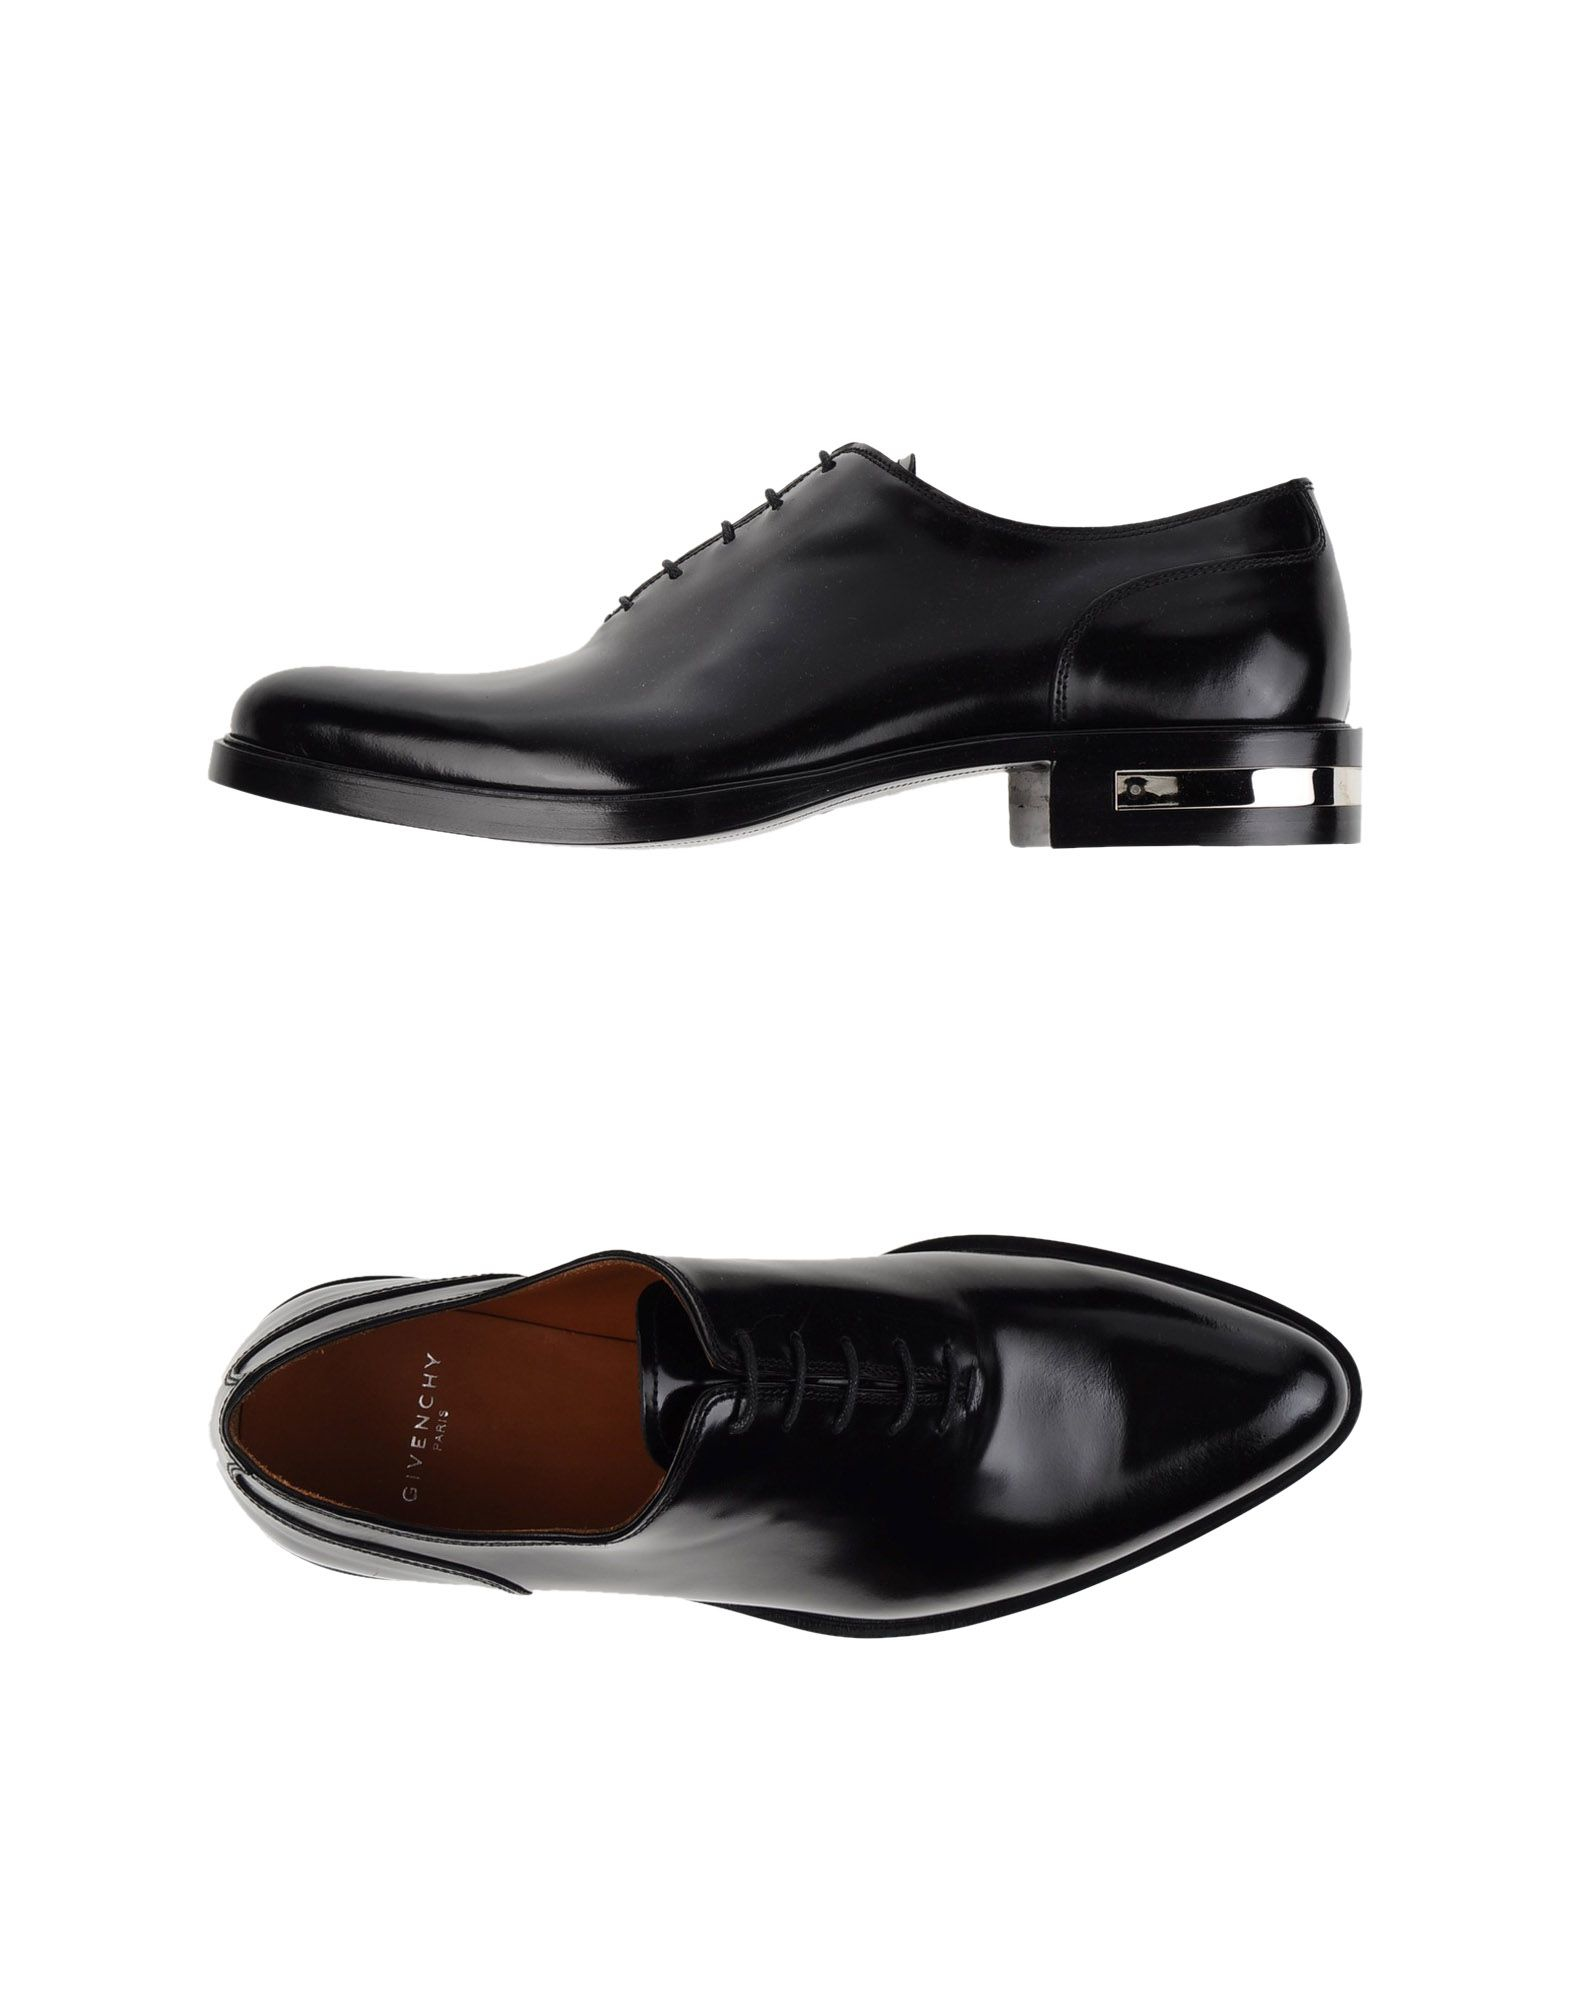 Lyst - Givenchy Lace-up Shoes in Black for Men